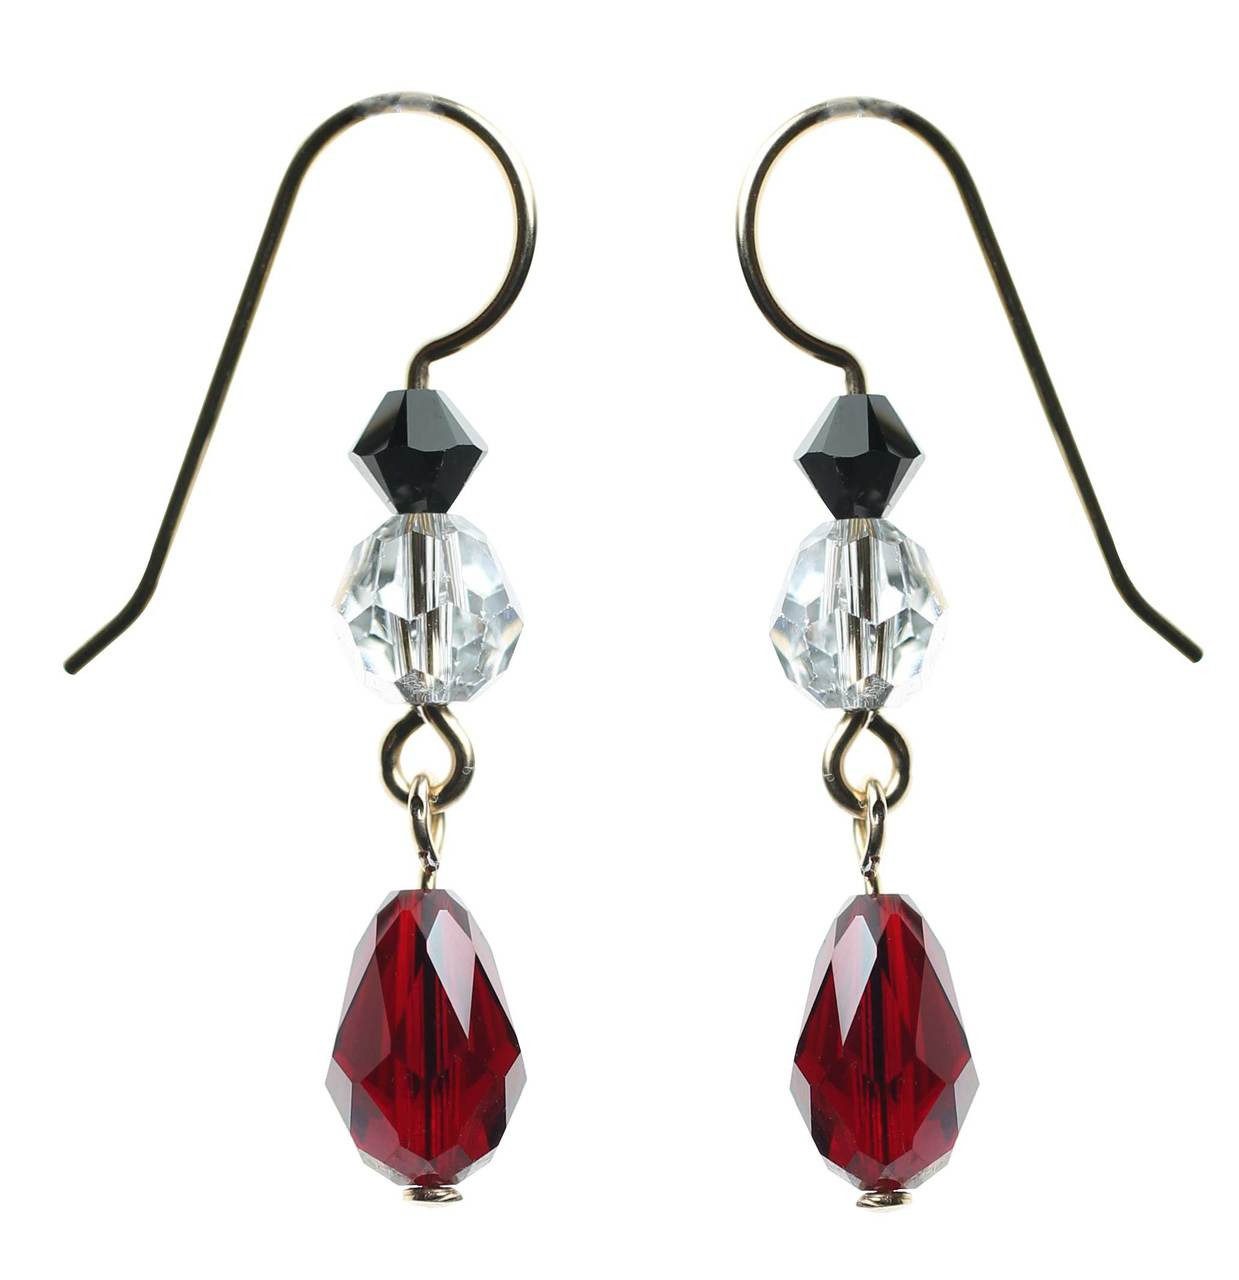 8e997569d Siam red Swarovski crystal dangle earrings made with rare silver coated  beads and 14K gold filled